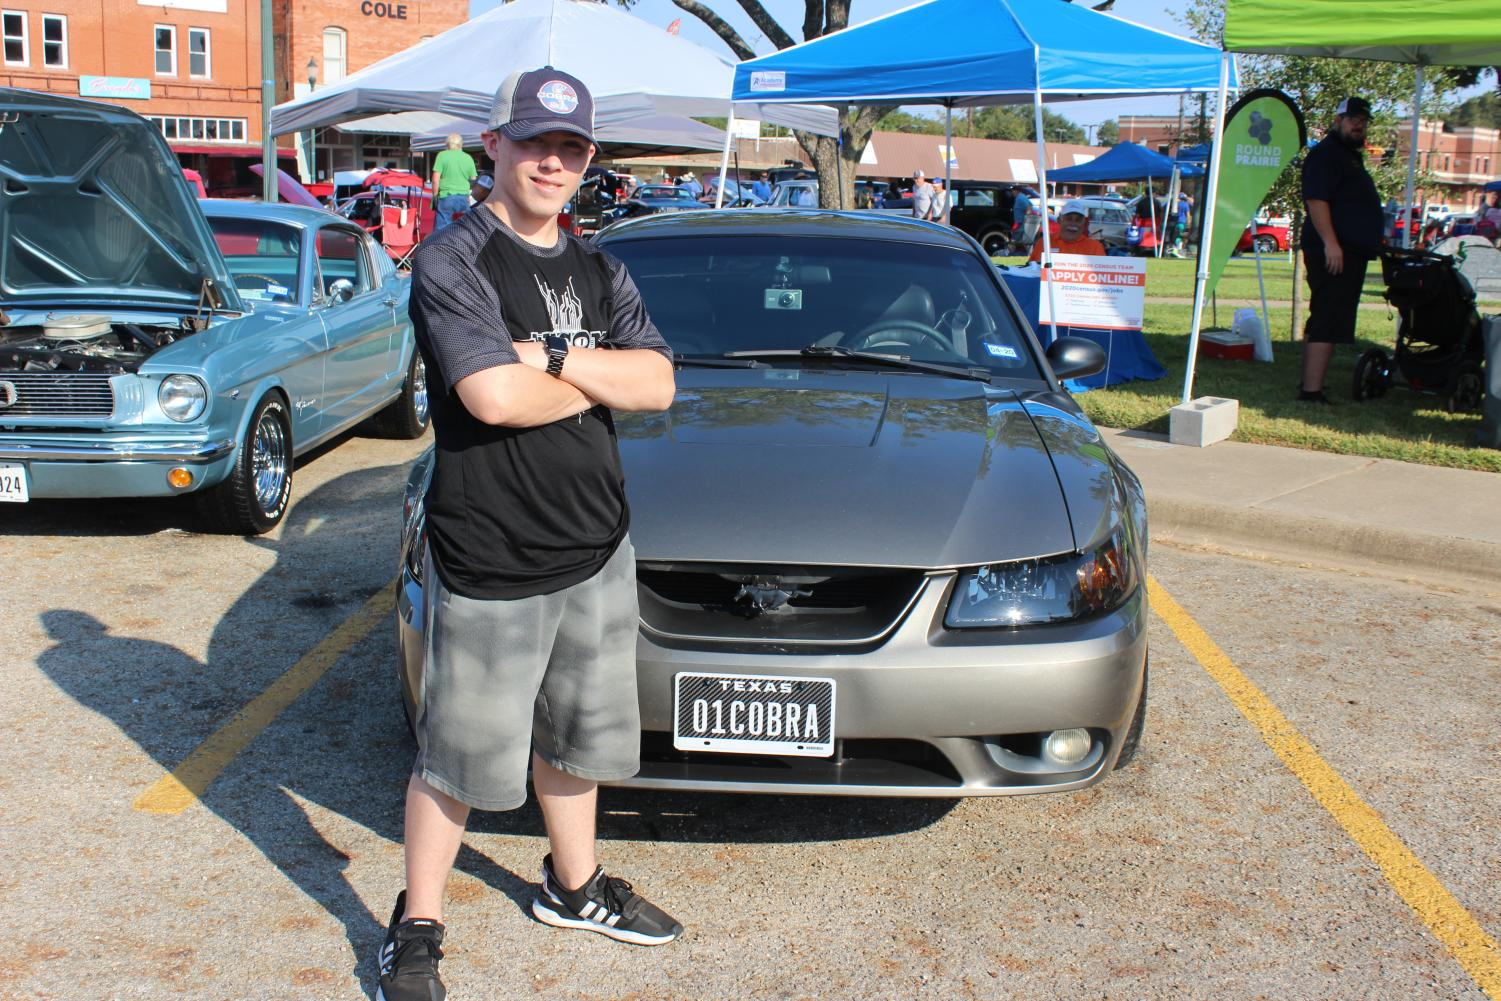 Senior Kaleb Shoemaker stands next to his '01 Cobra. Photo by Isabel Growden.